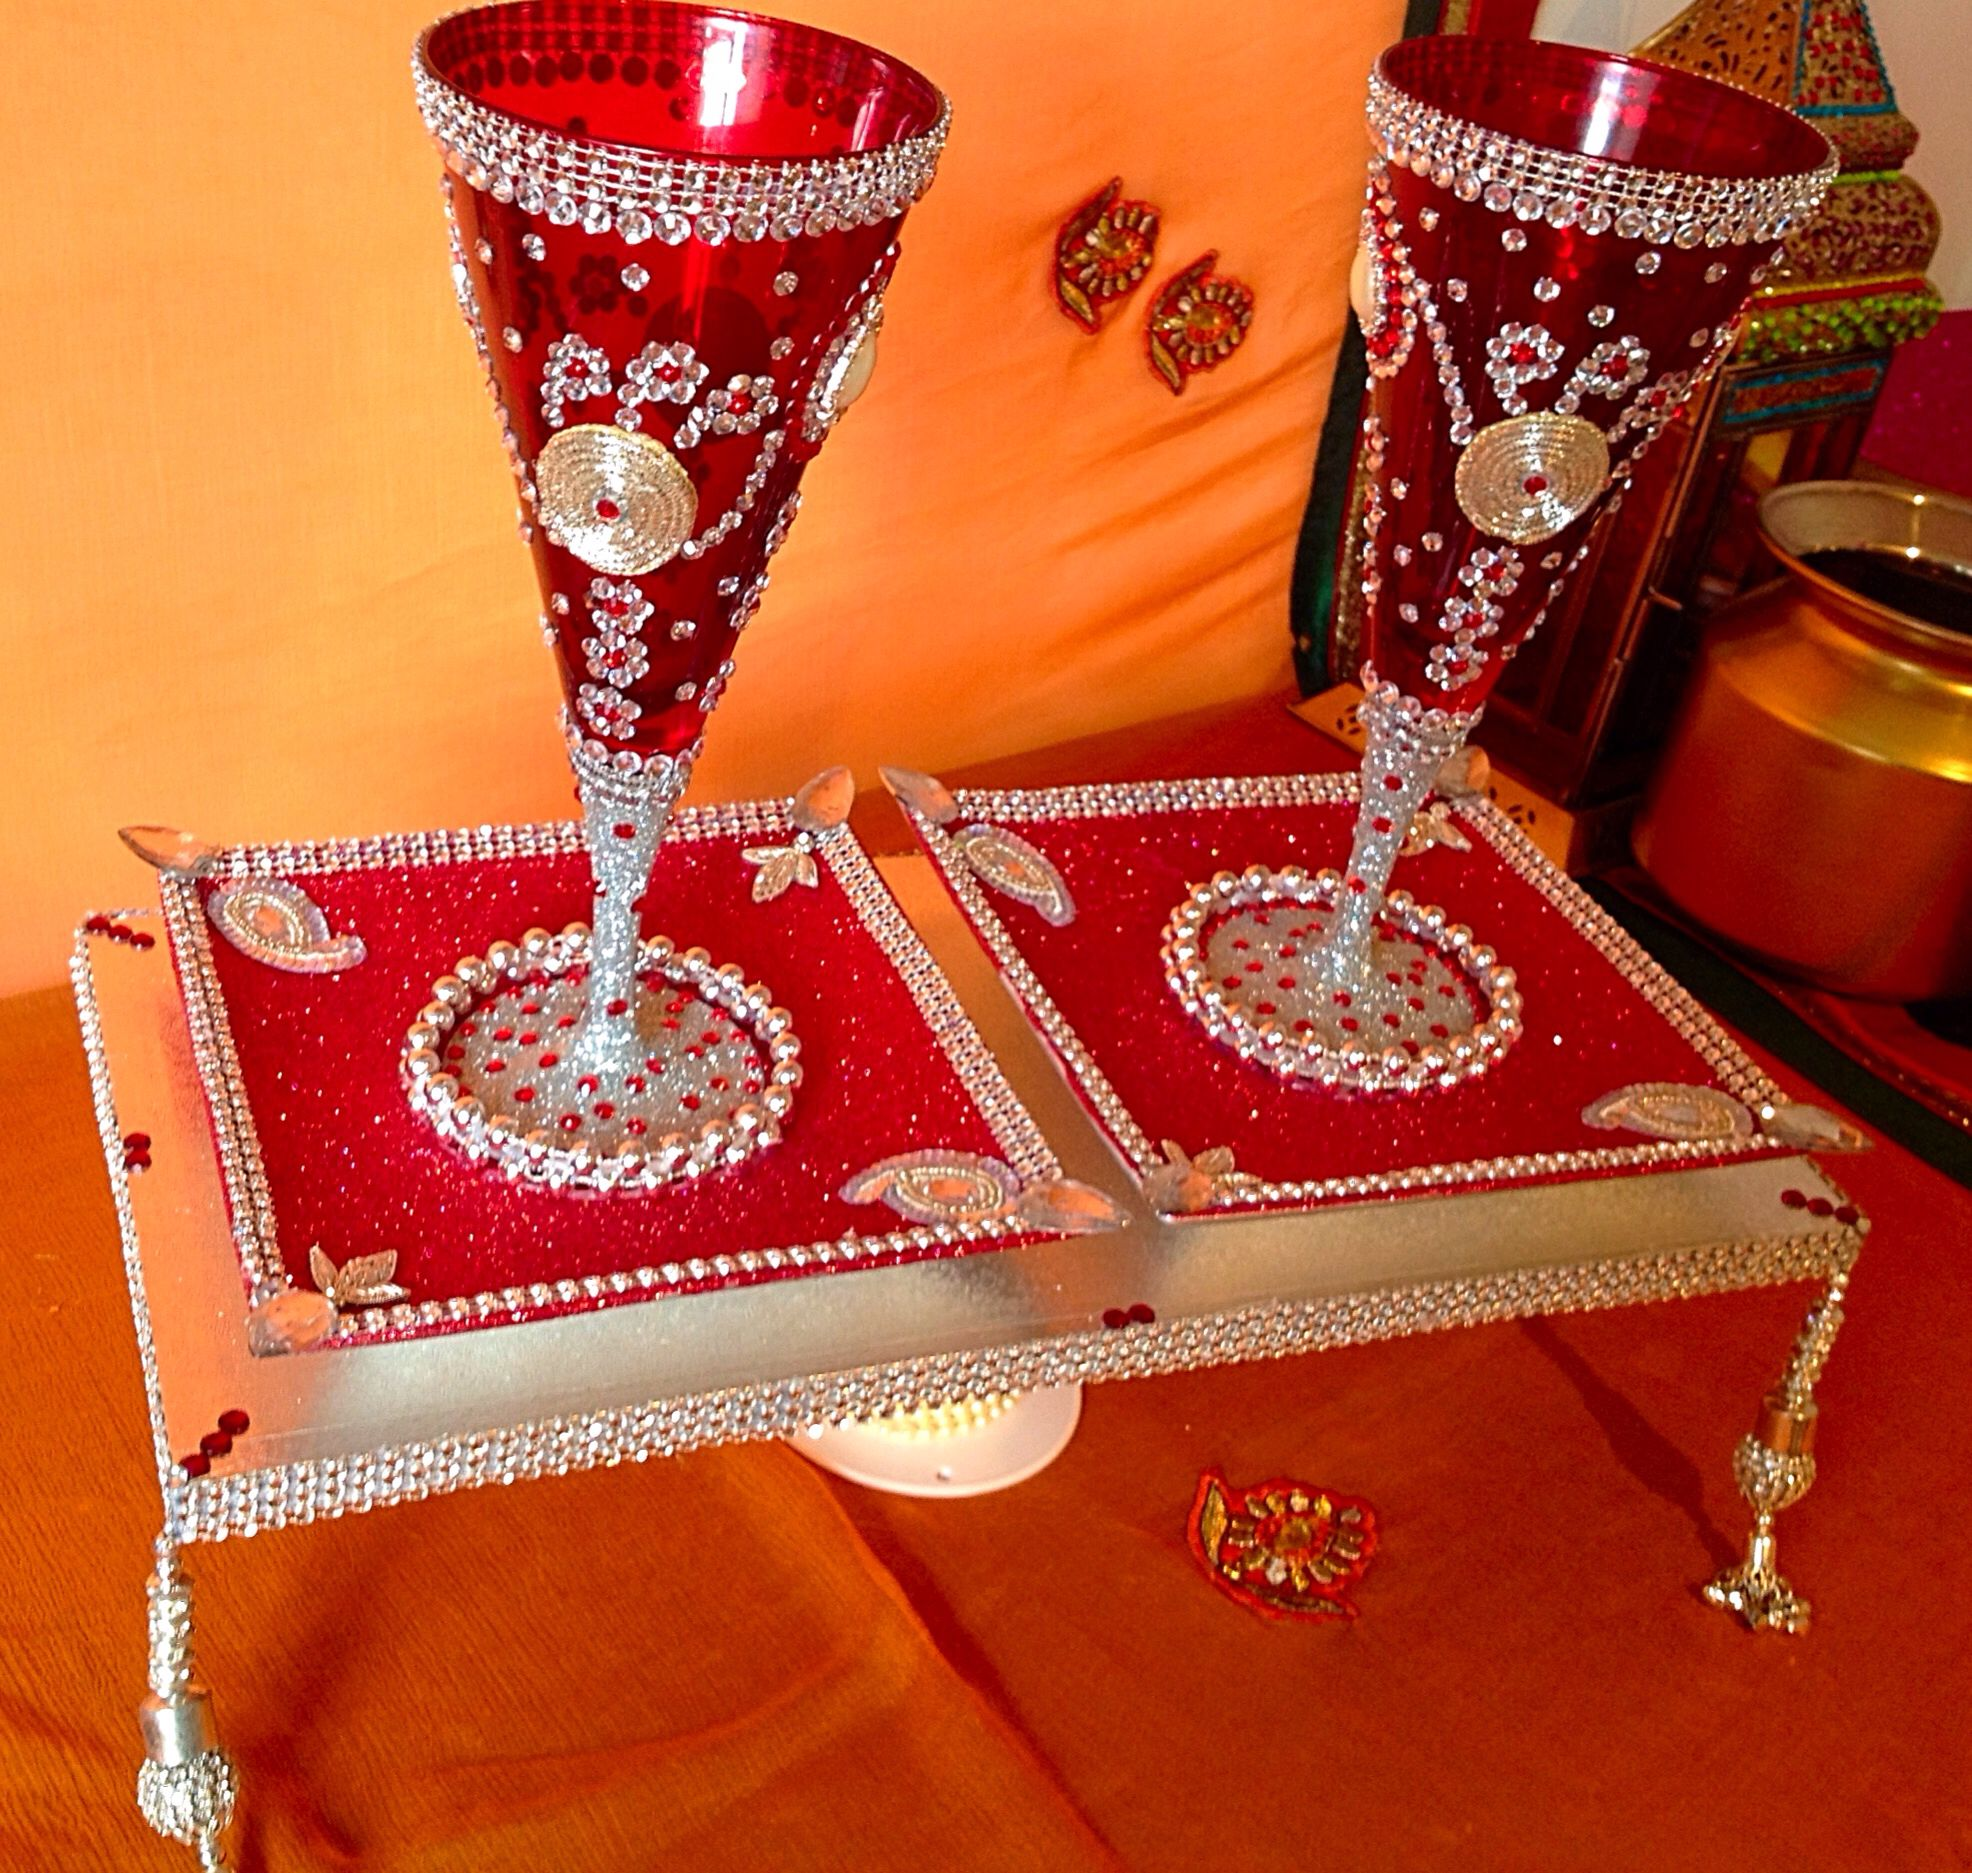 A beautiful set of Doodh Pilai glasses set on matching diamonte plates. See my facbiik page www.facebook.com/mehnditraysforfun for more ideas and inspiration.